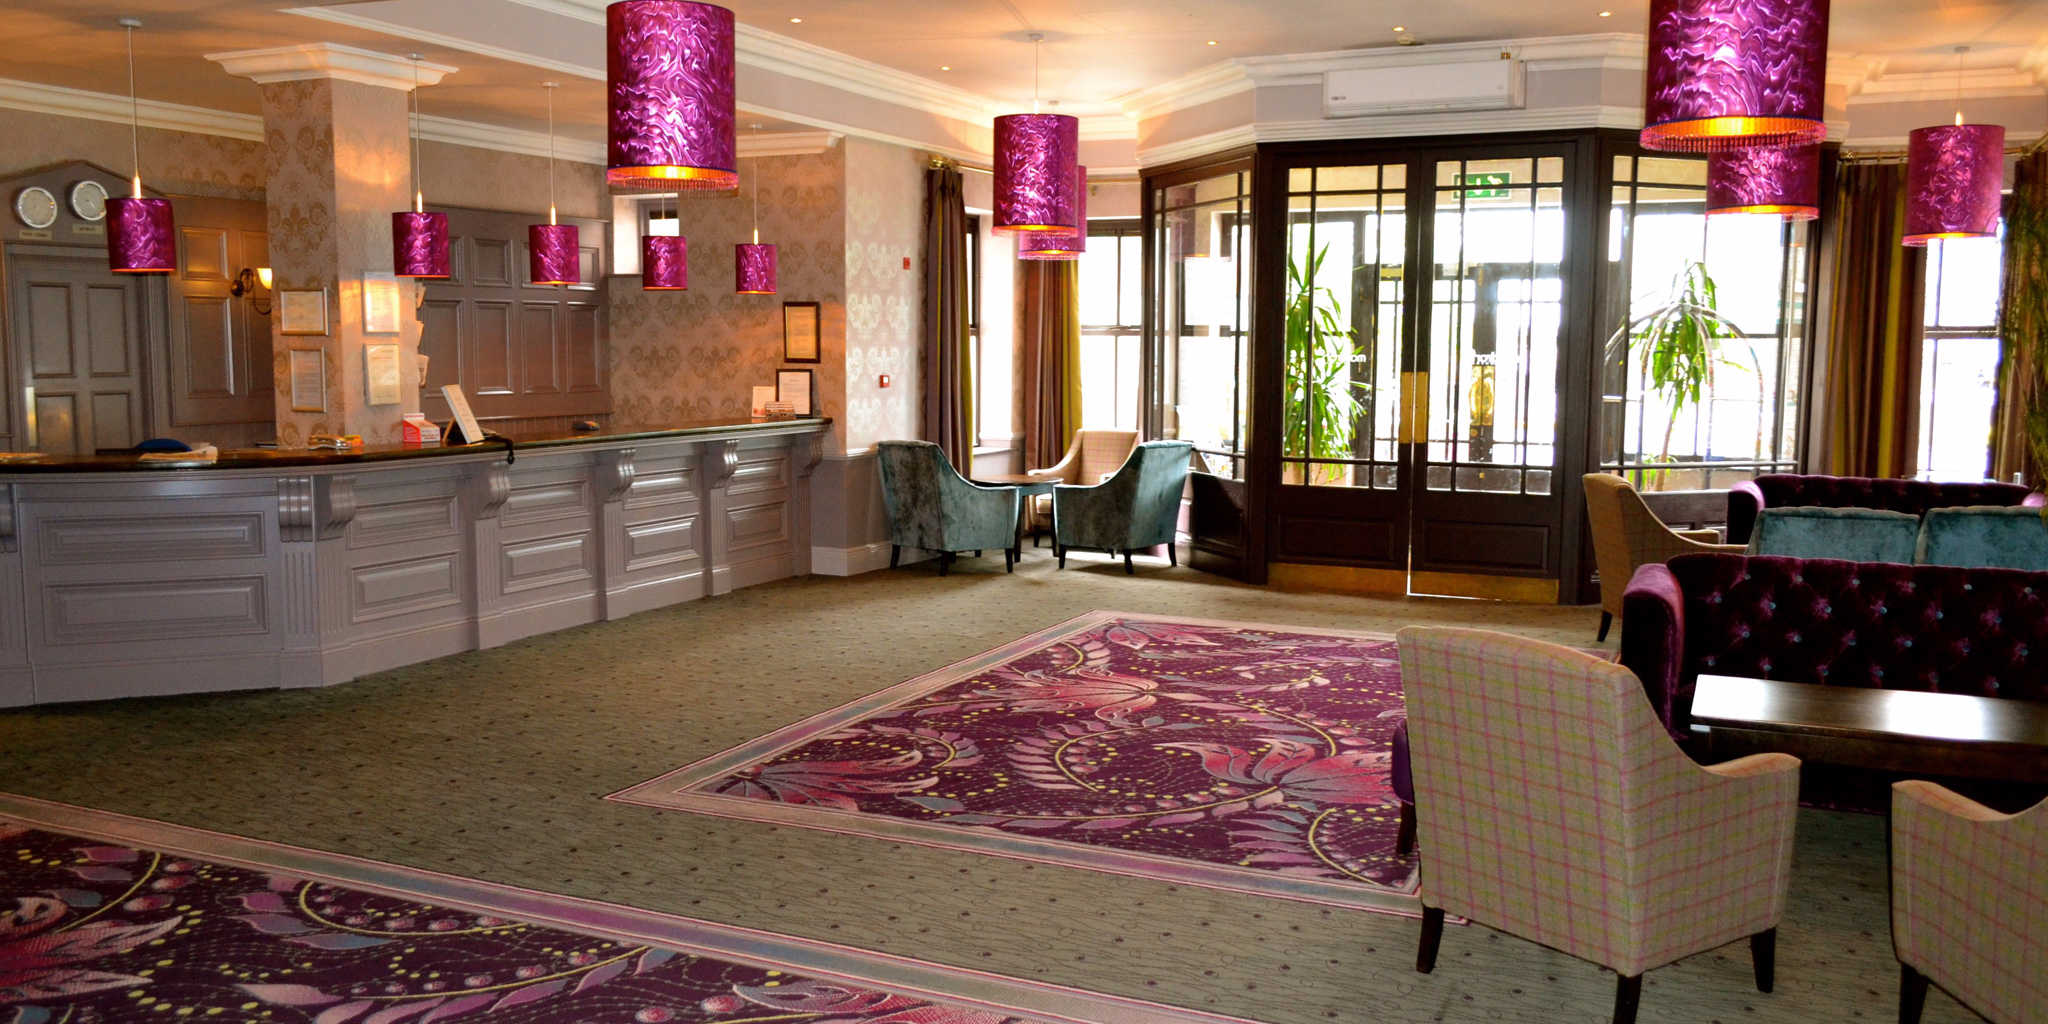 Galway Hotels Special Offers City Centre